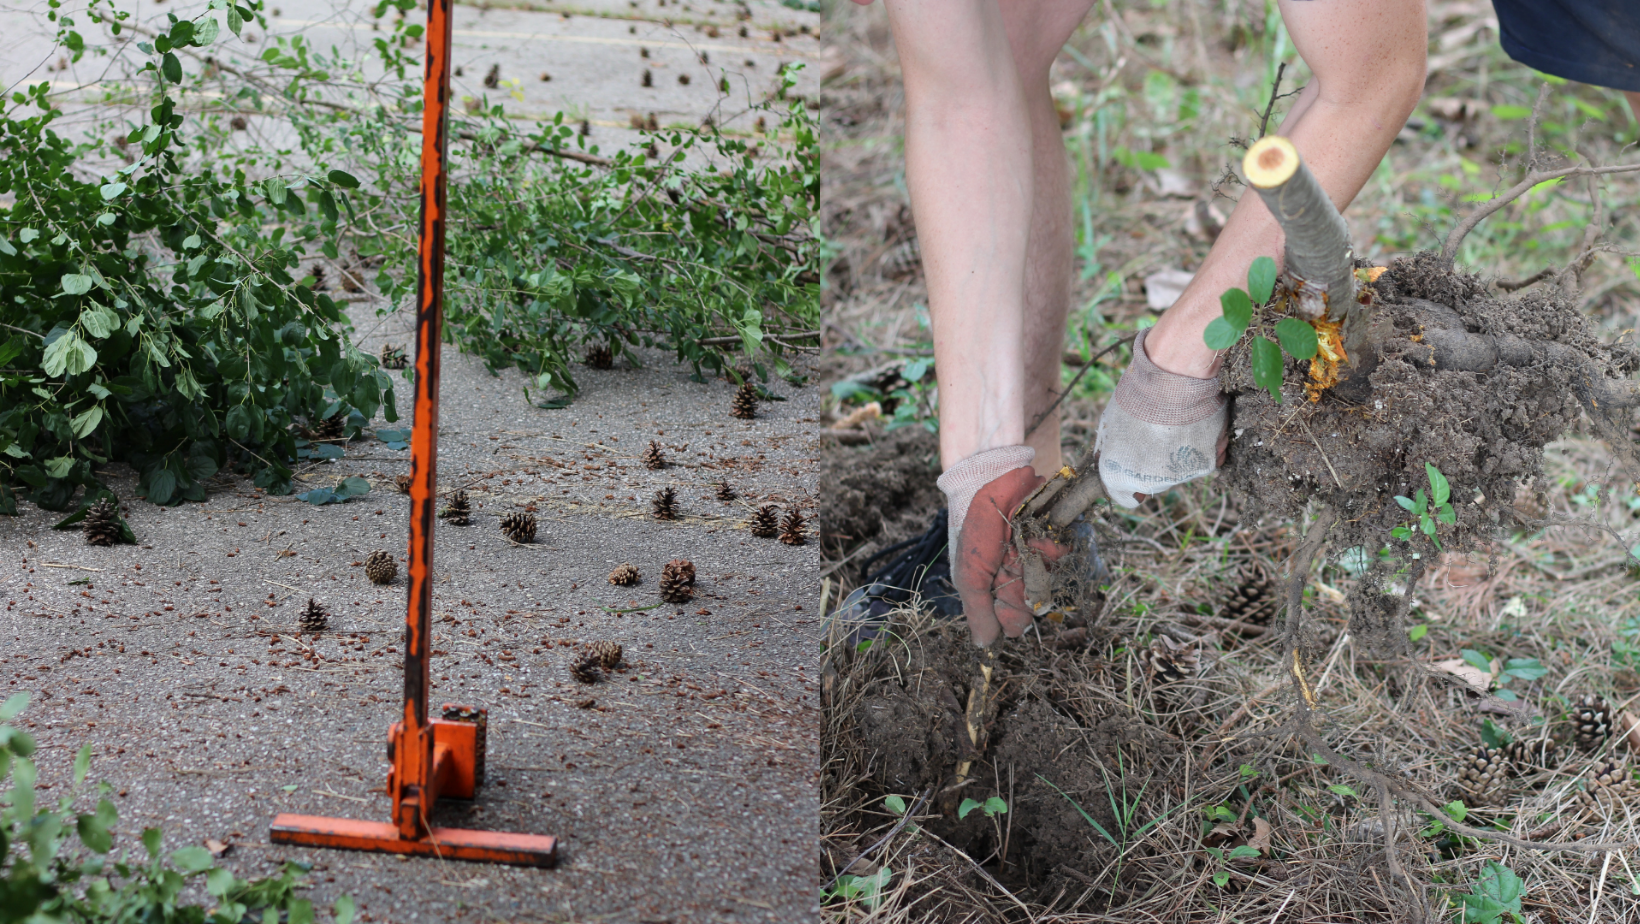 On left: Weed Wrench. On right, Justin Steinburg removing a buckthorn plant at the Siloam United Church location.